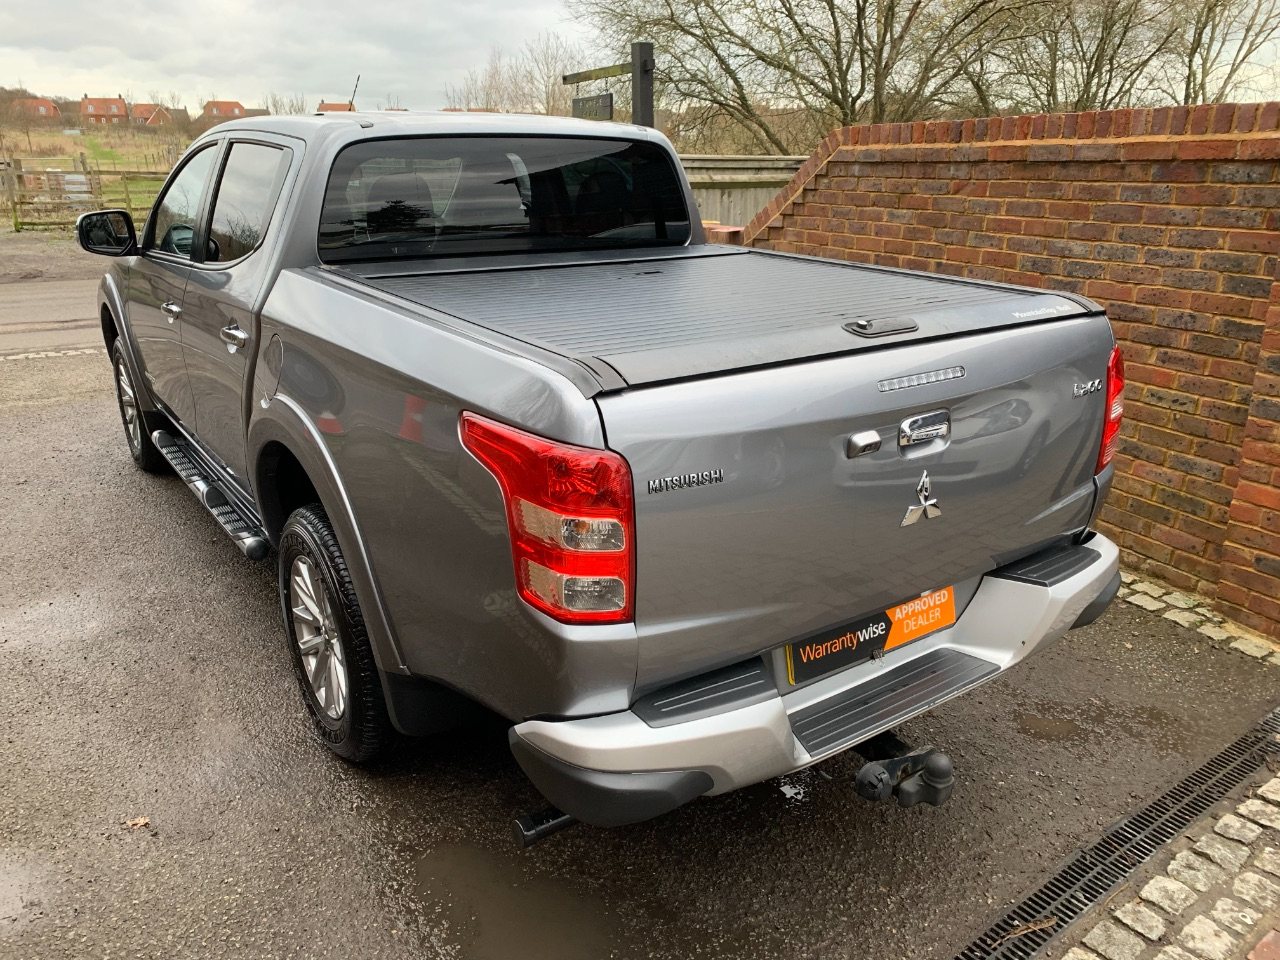 2015 Mitsubishi L200 2.4 Double Cab DI-D 178 Warrior 4WD Auto + NO VAT